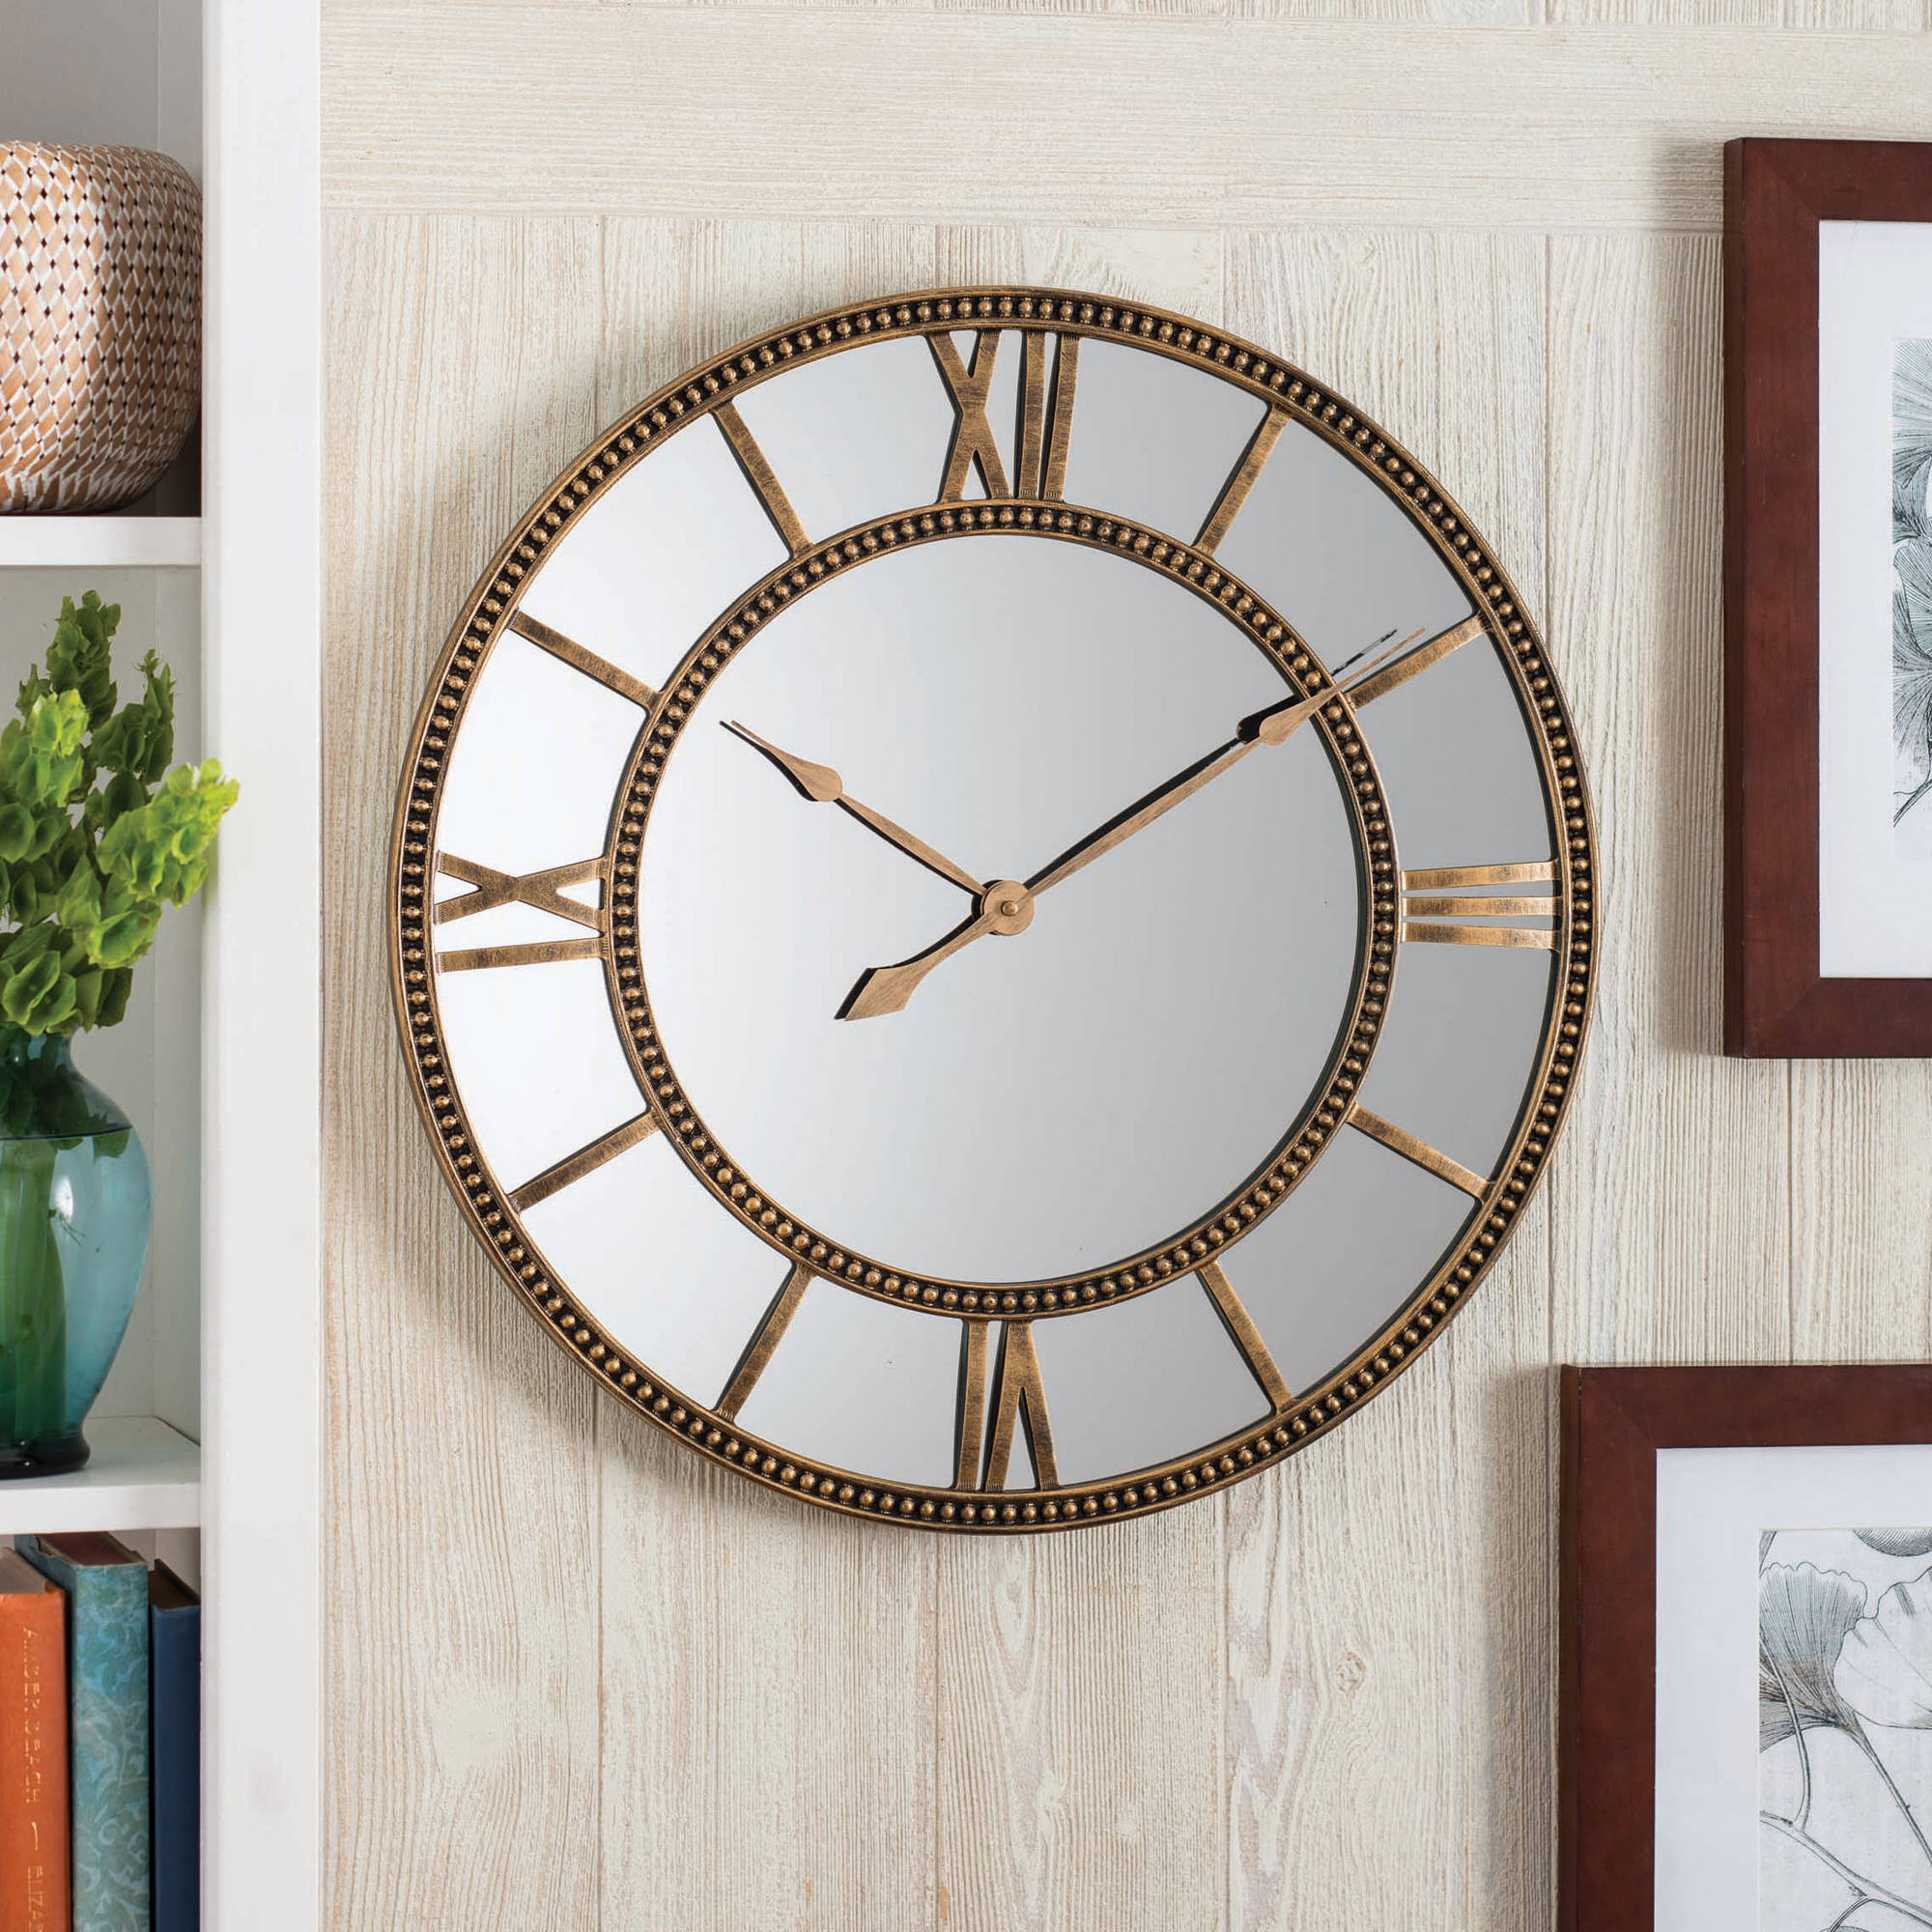 Better Homes and Gardens Mirror Clock, Distressed Gold - Walmart.com